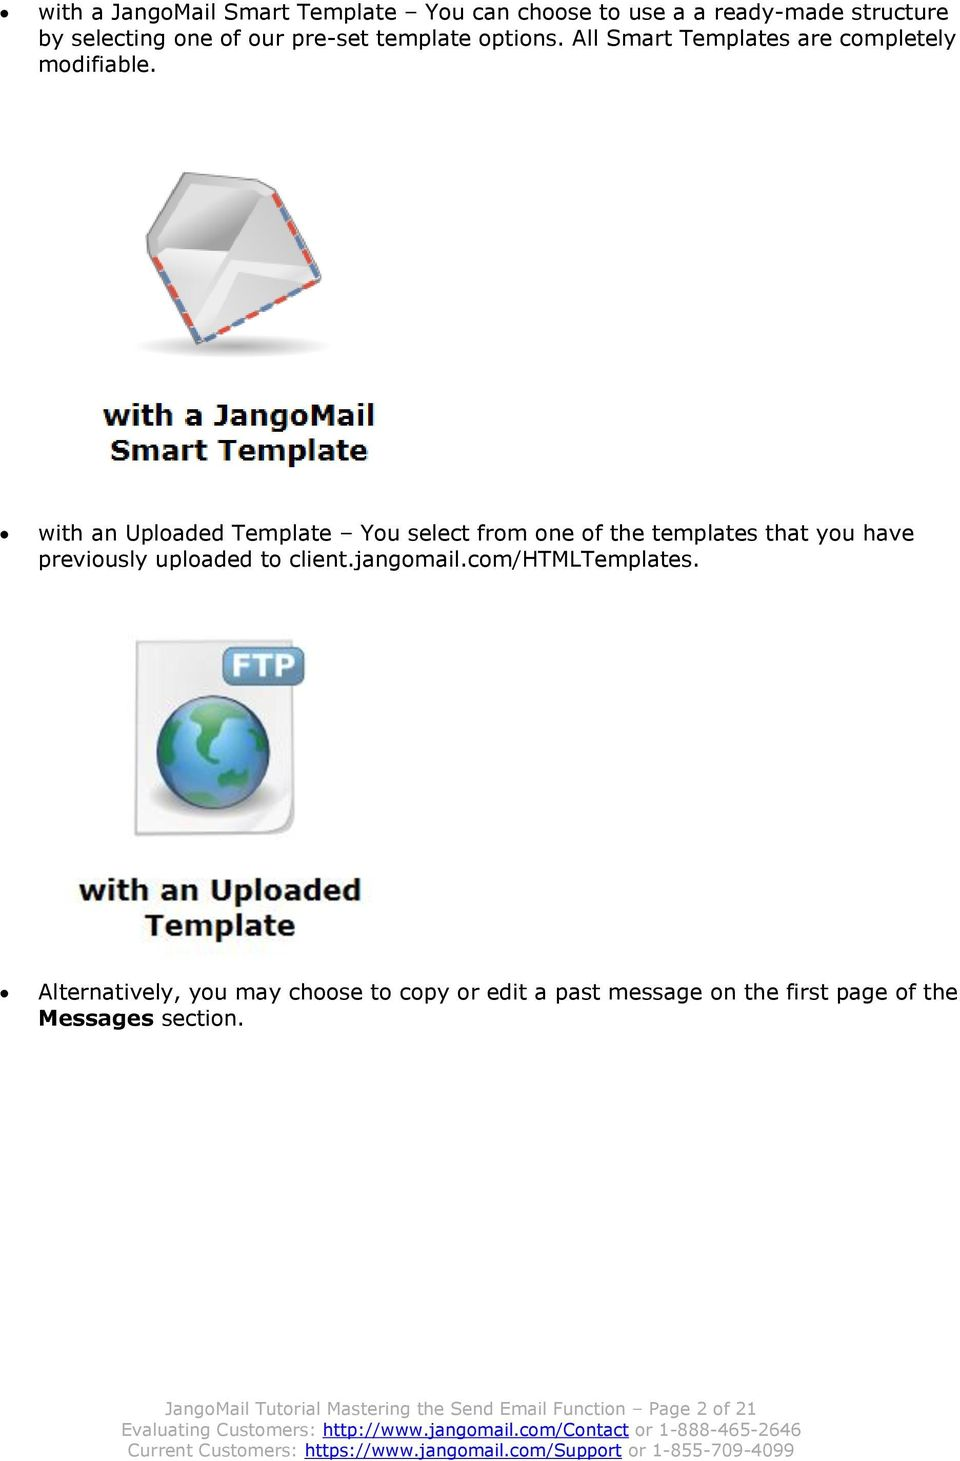 with an Uploaded Template You select from one of the templates that you have previously uploaded to client.jangomail.